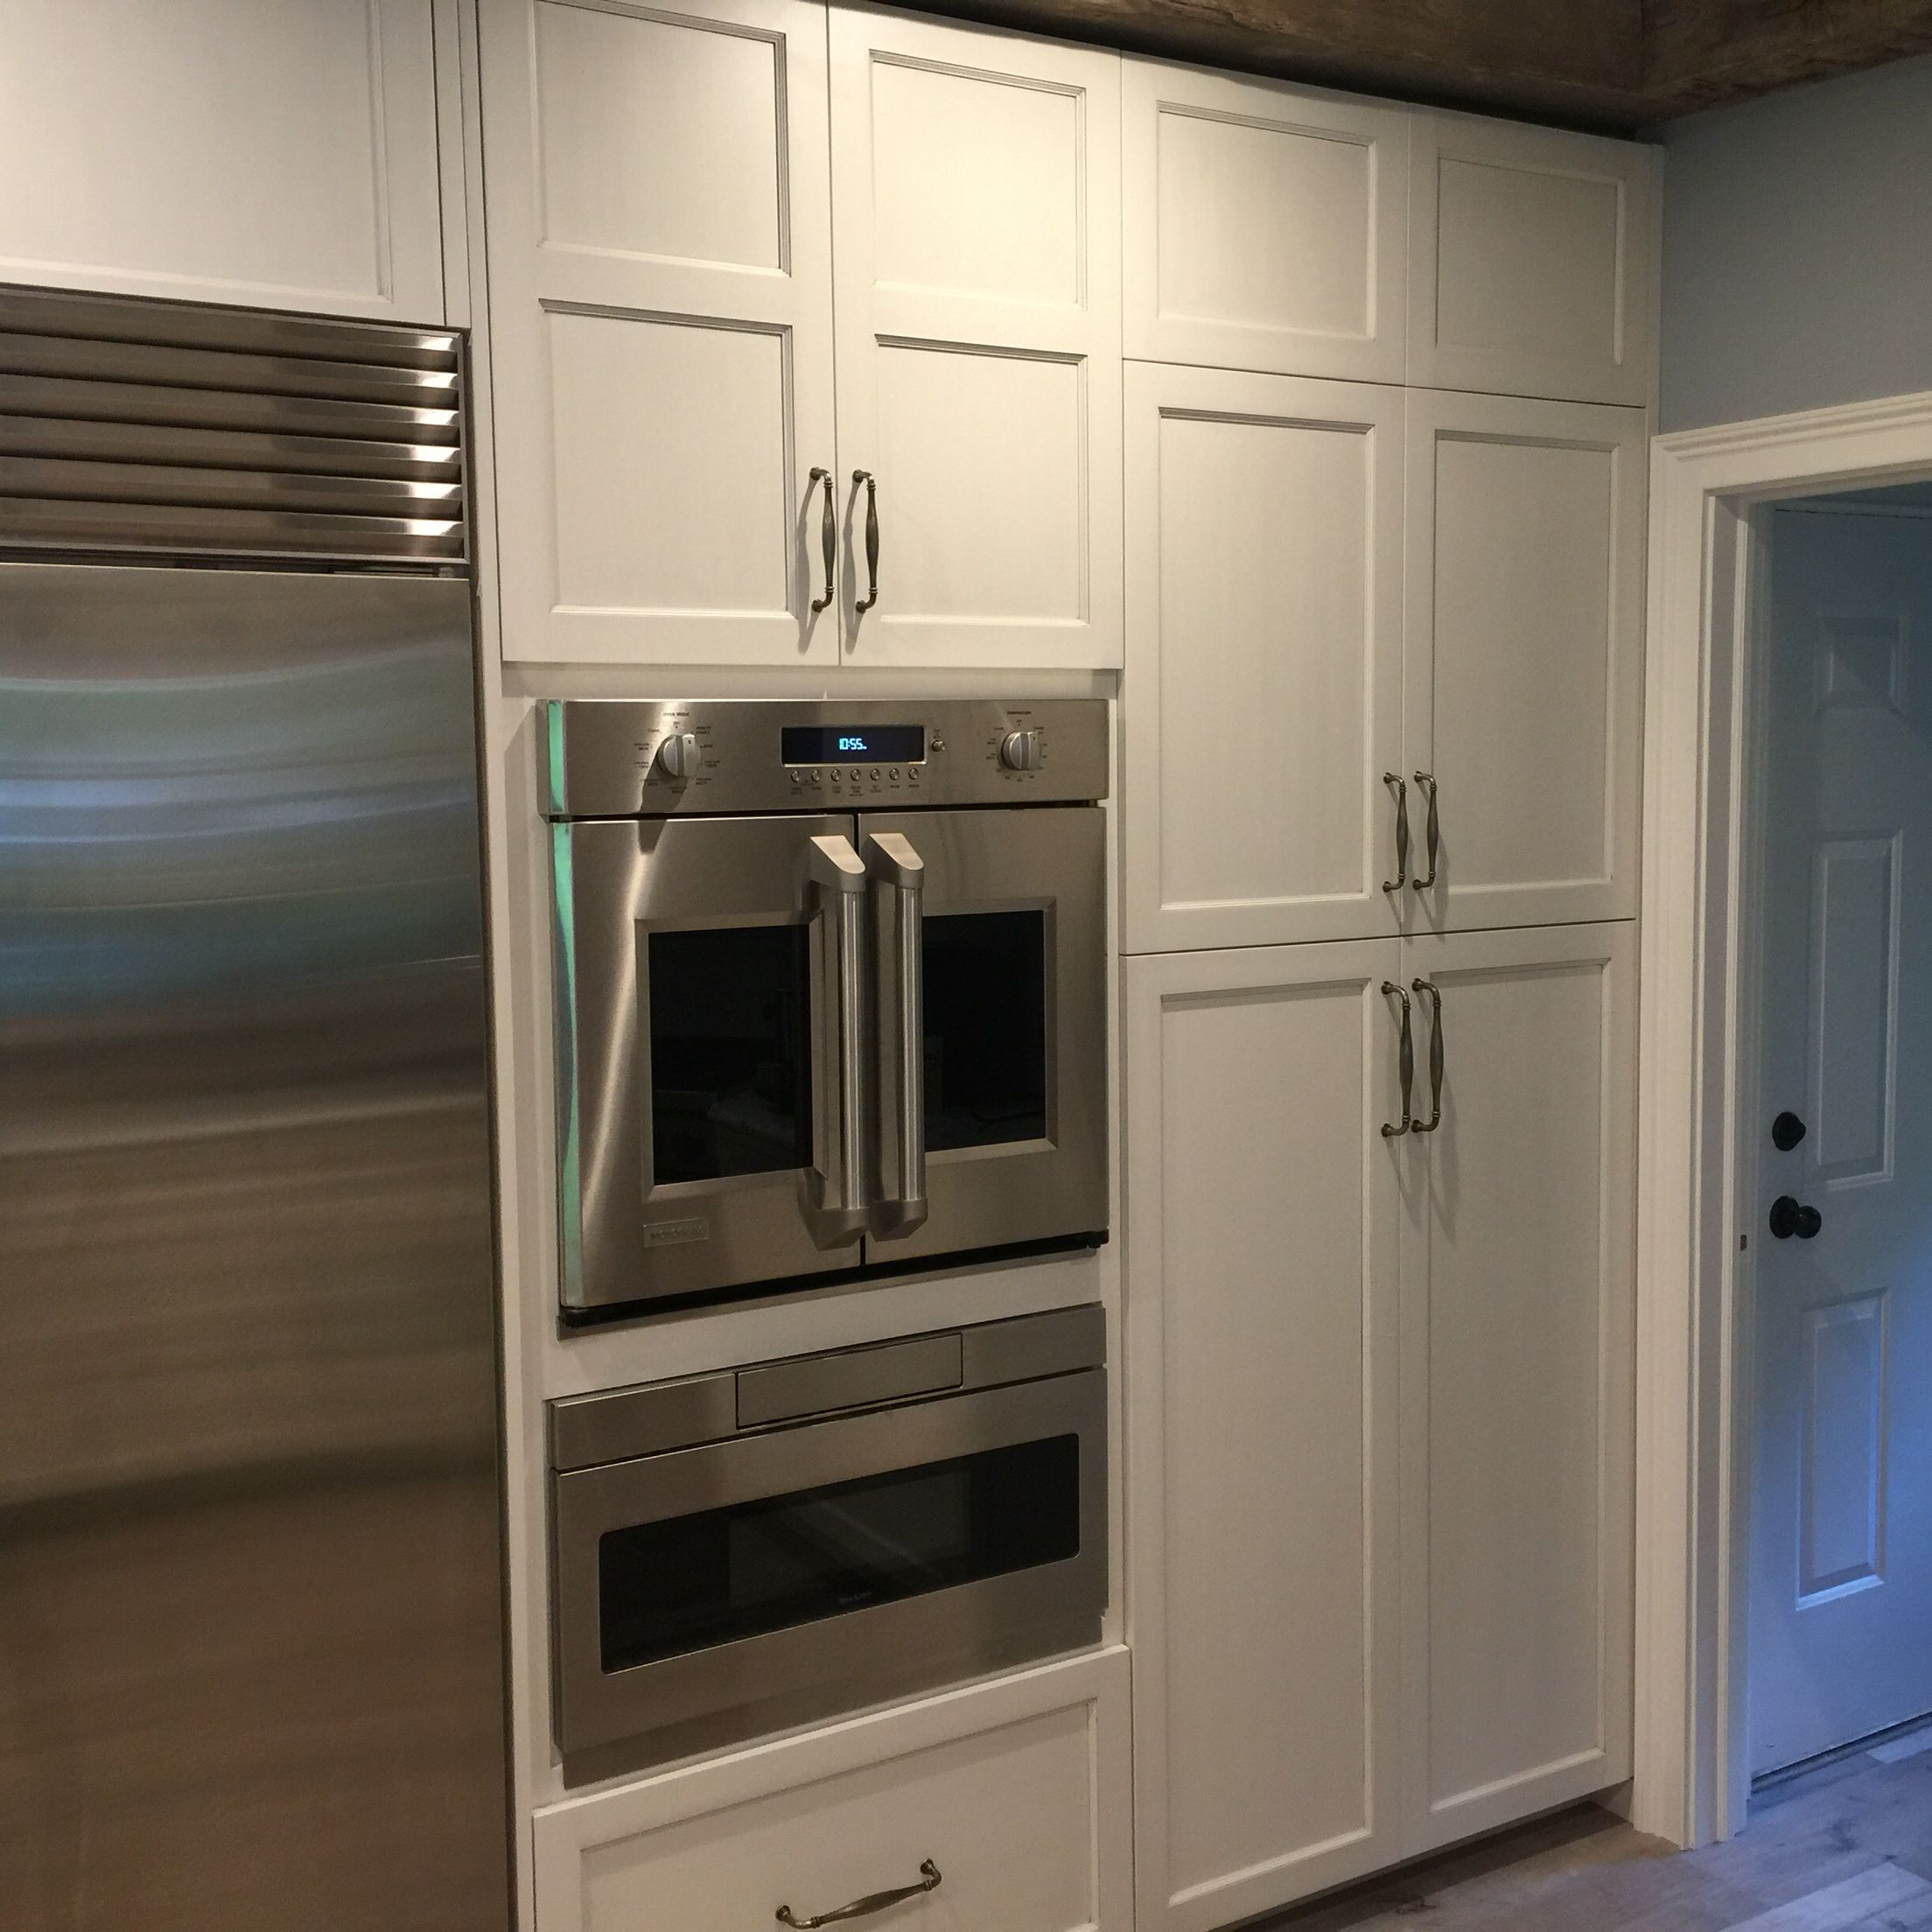 New French Door Oven From Ge With A Drawer Microwave Underneath